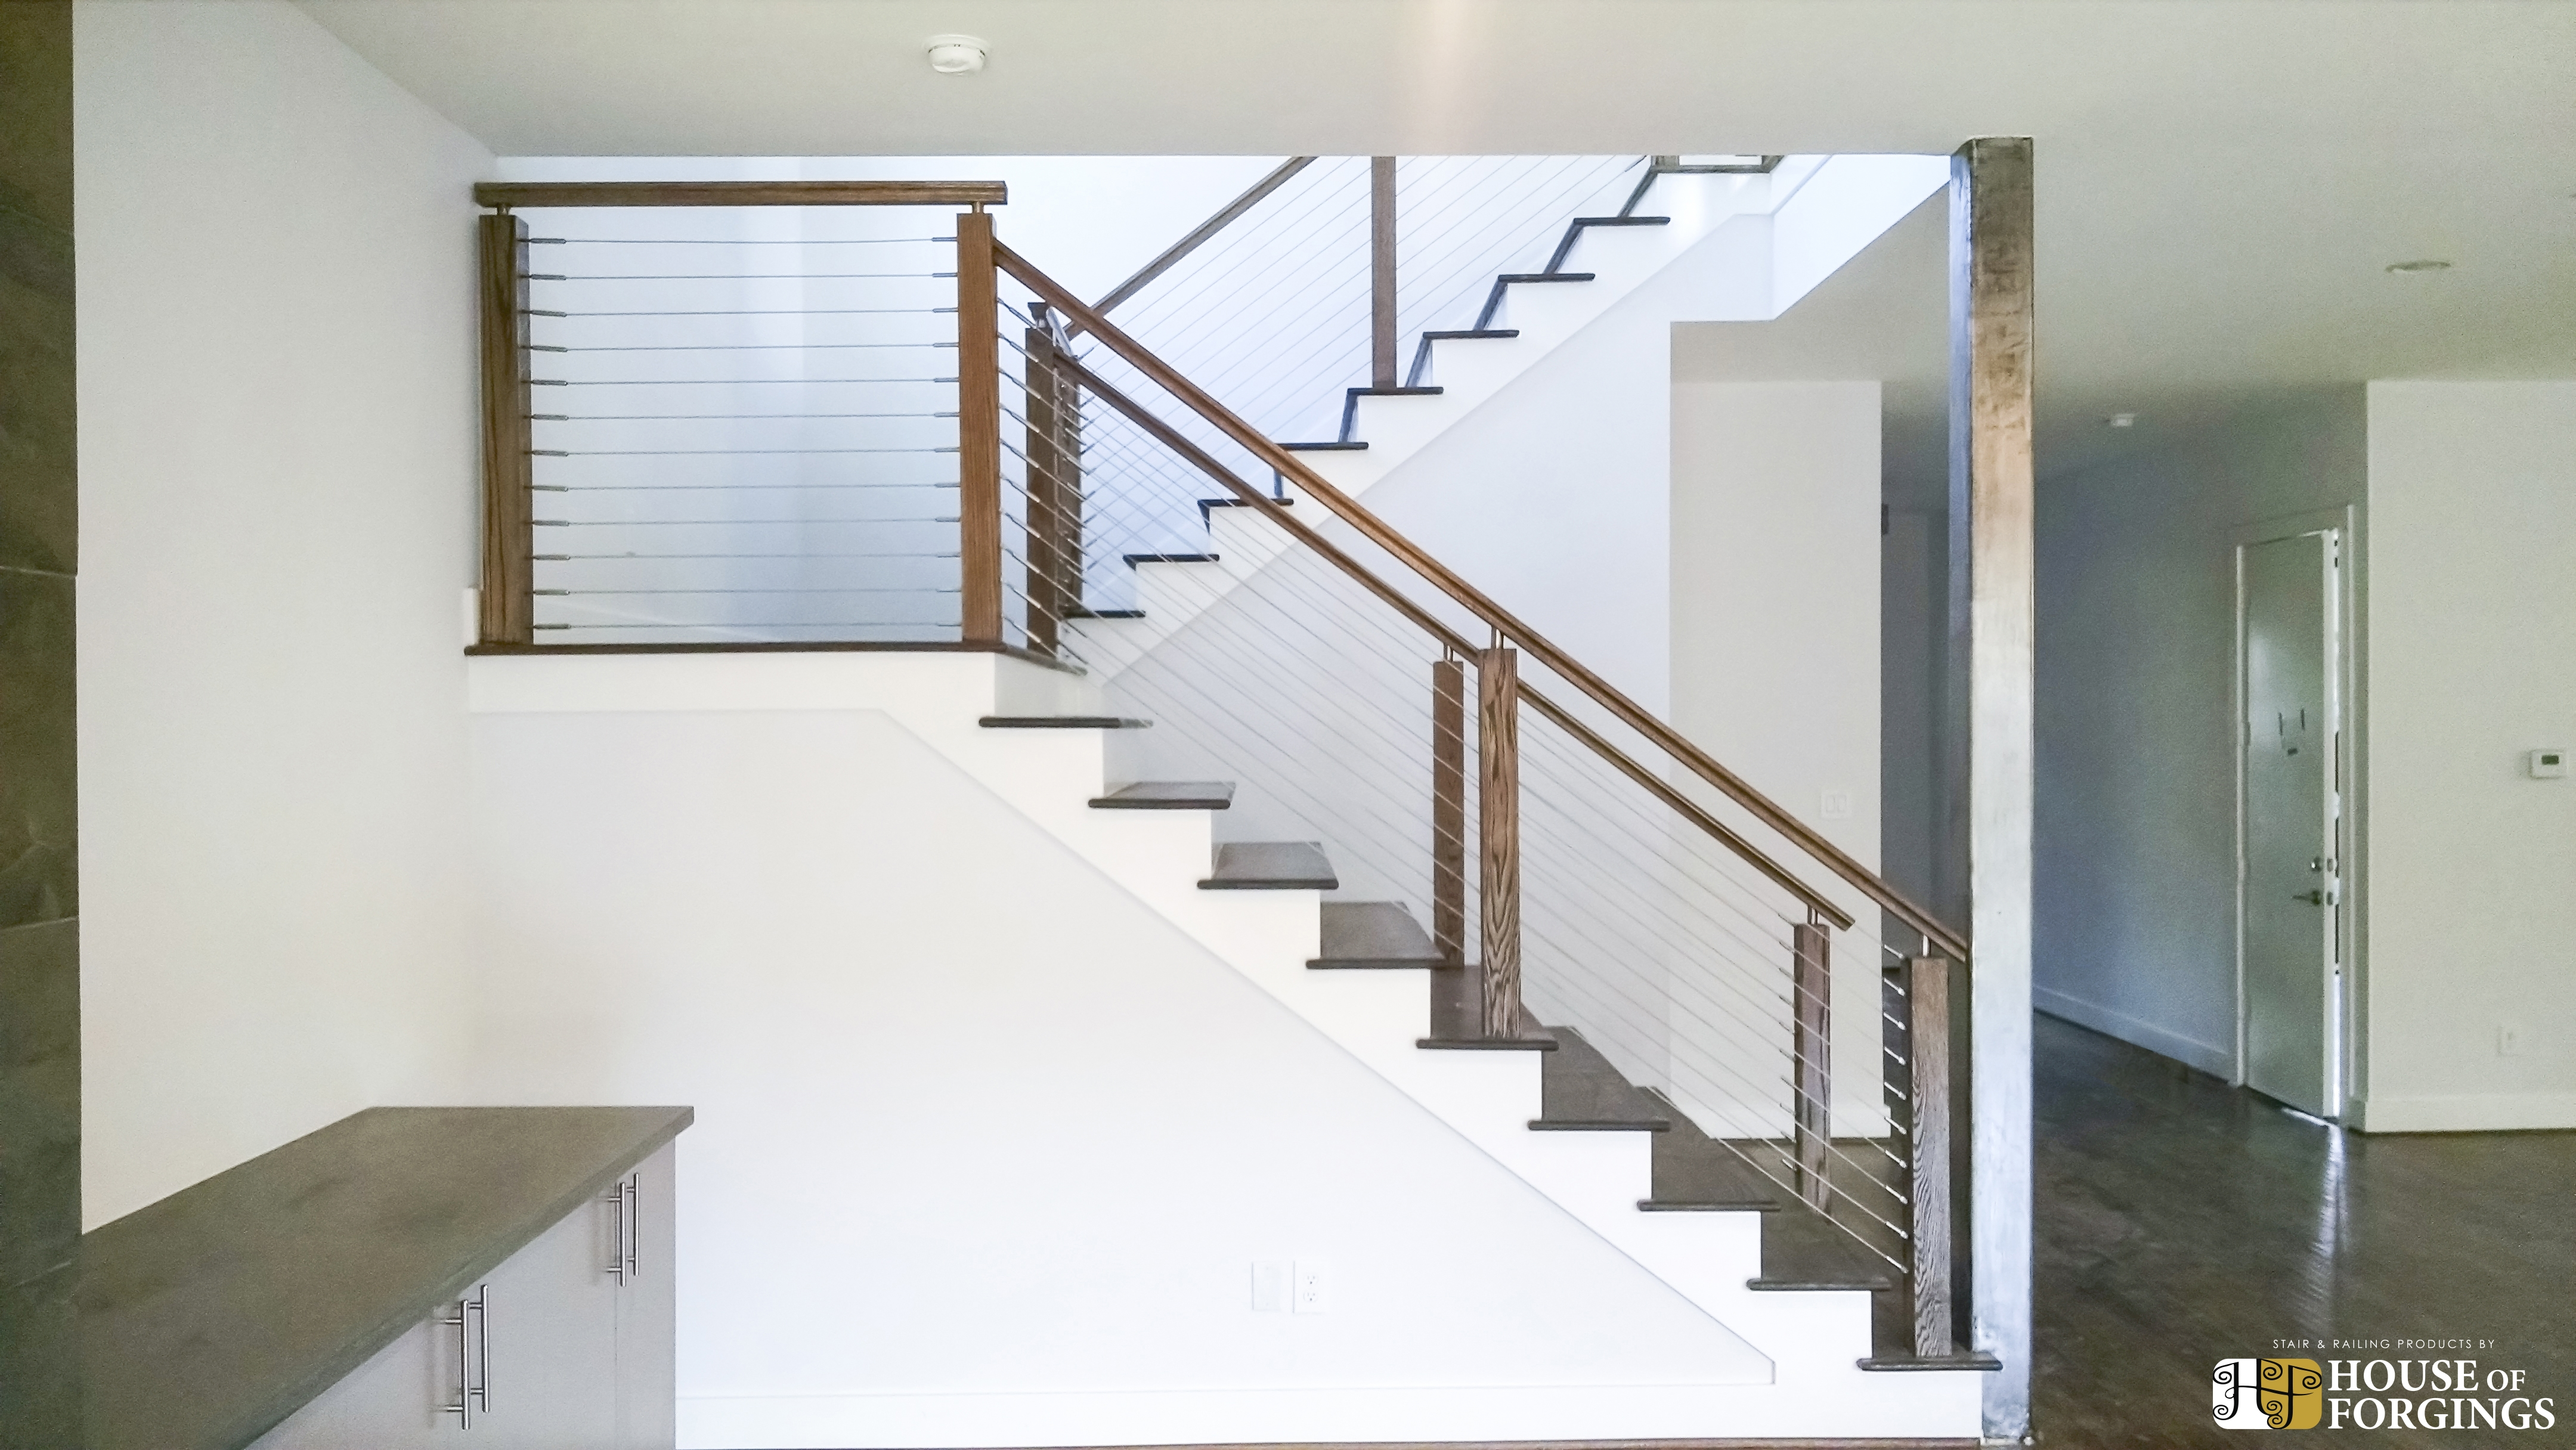 Cable Railing Systems For Stairs Balconies   Railings Stairs Inside House   Wood   Cable Railing Systems   Deck Railing   Glass Railing Ideas   Banister